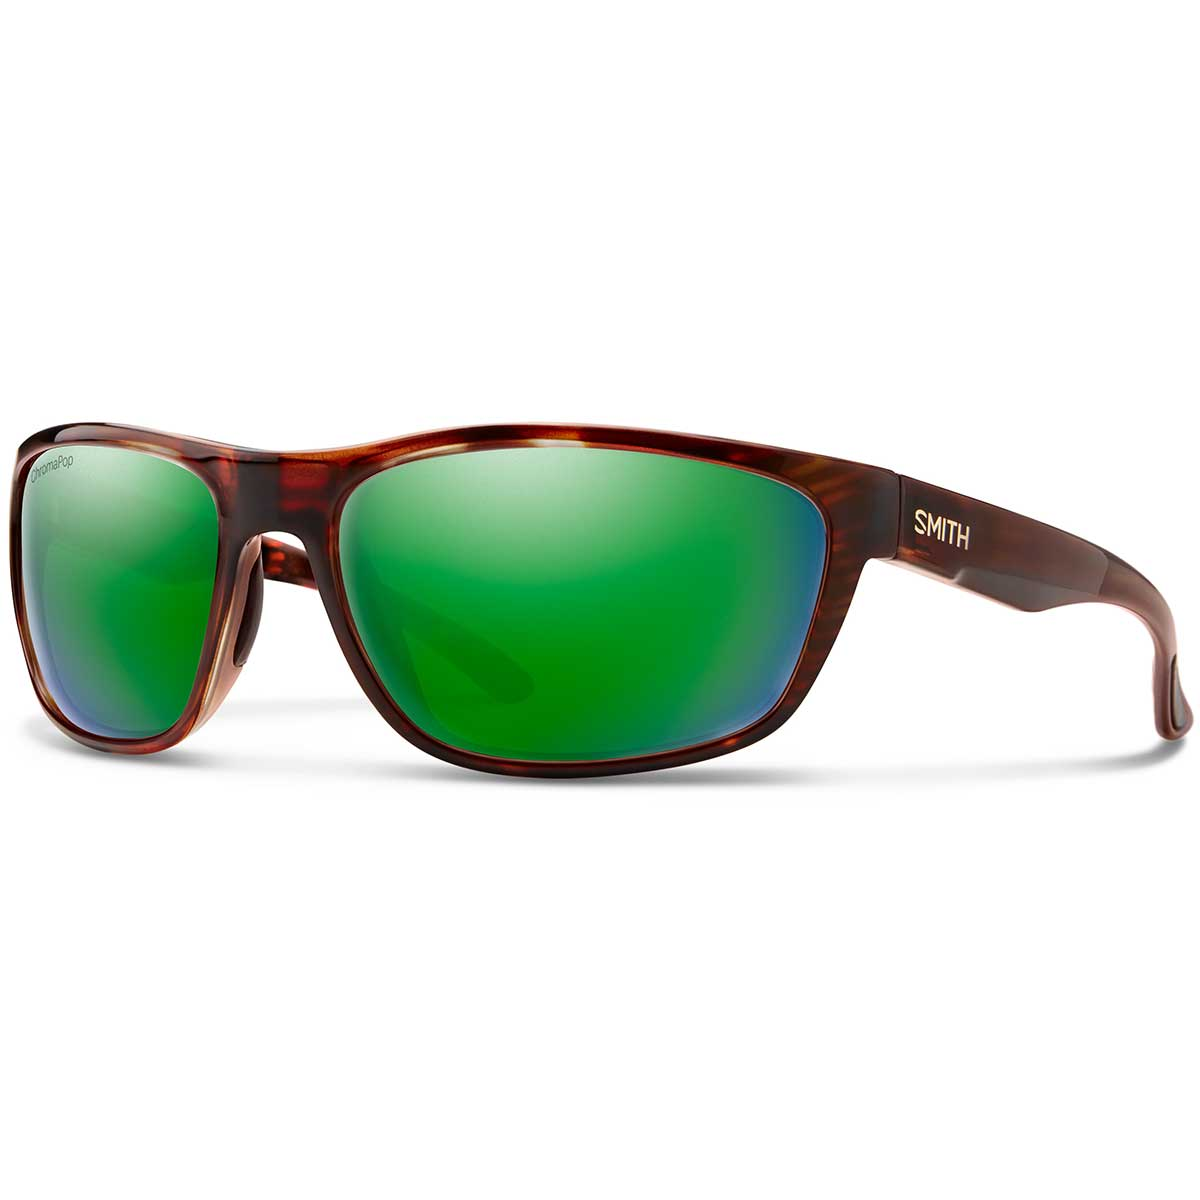 Smith Redding sunglasses in Tortoise with Green Mirror Glass polarized ChromaPop lenses